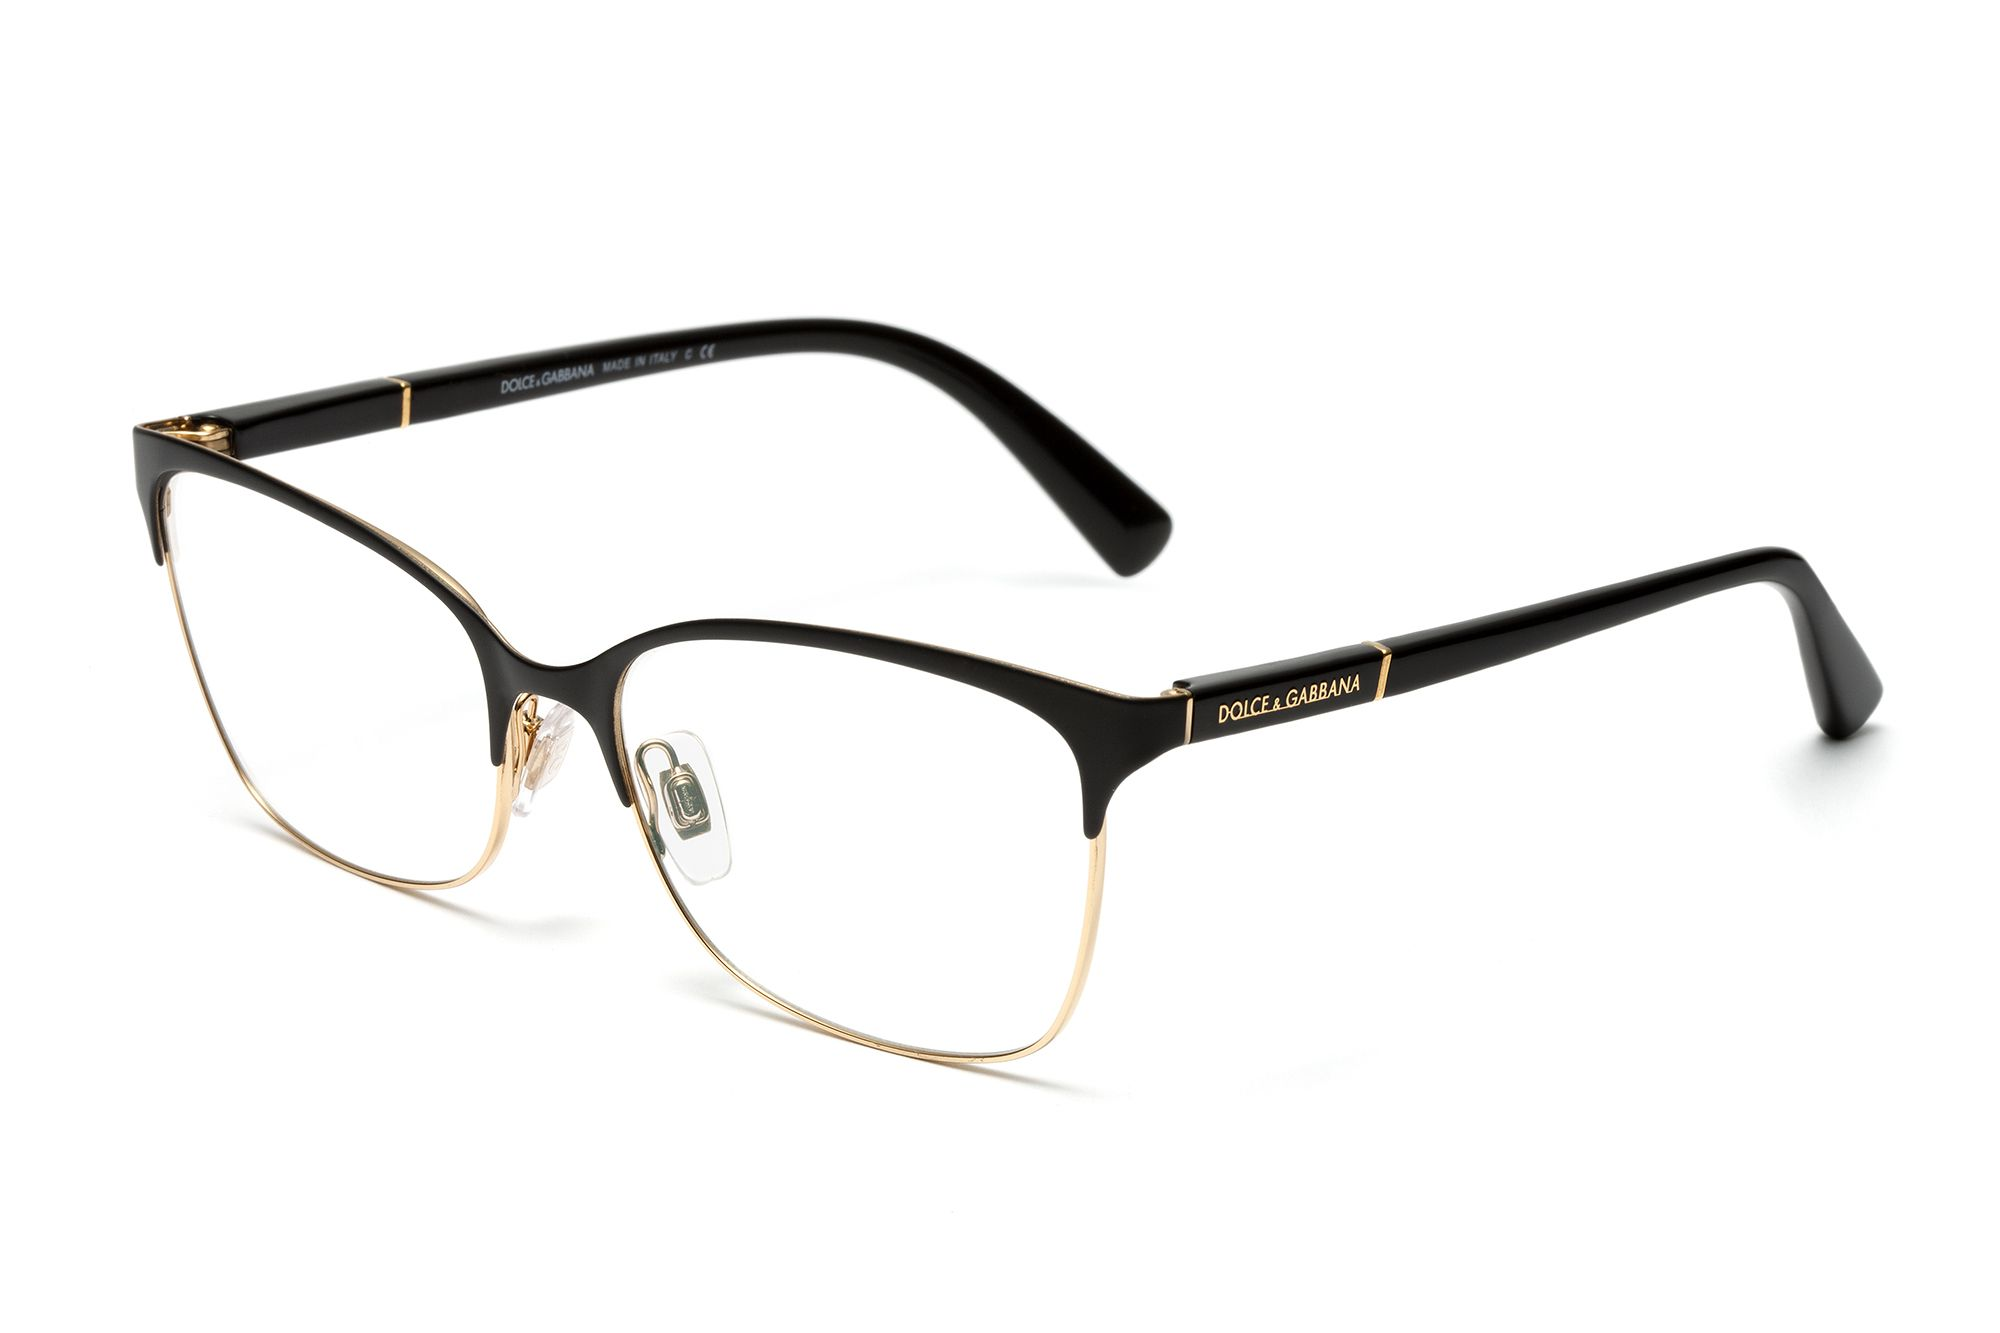 5bb399a8c55 Women s gold and matte black metal eyeglasses dg1268 with square frame and  Dolce…